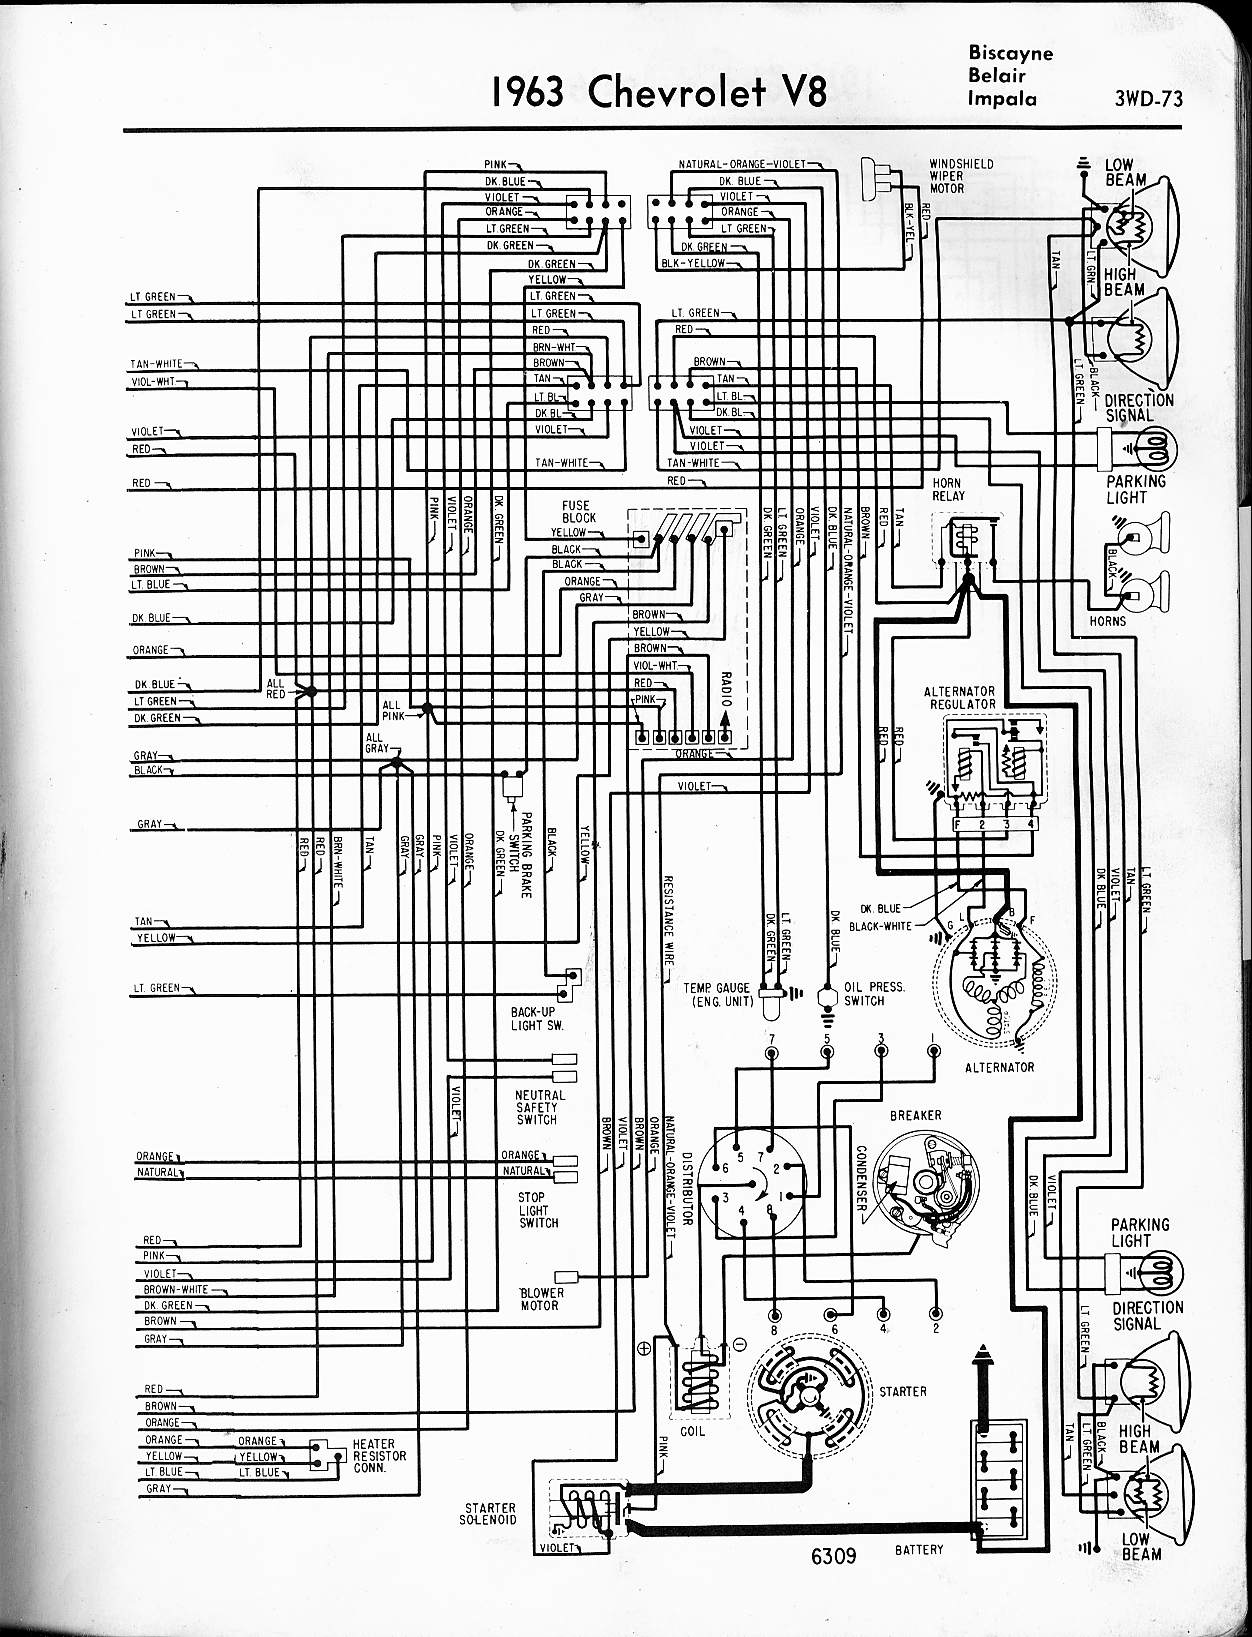 hight resolution of 57 65 chevy wiring diagrams 1964 impala tail light wiring diagram 1963 v8 biscayne belair